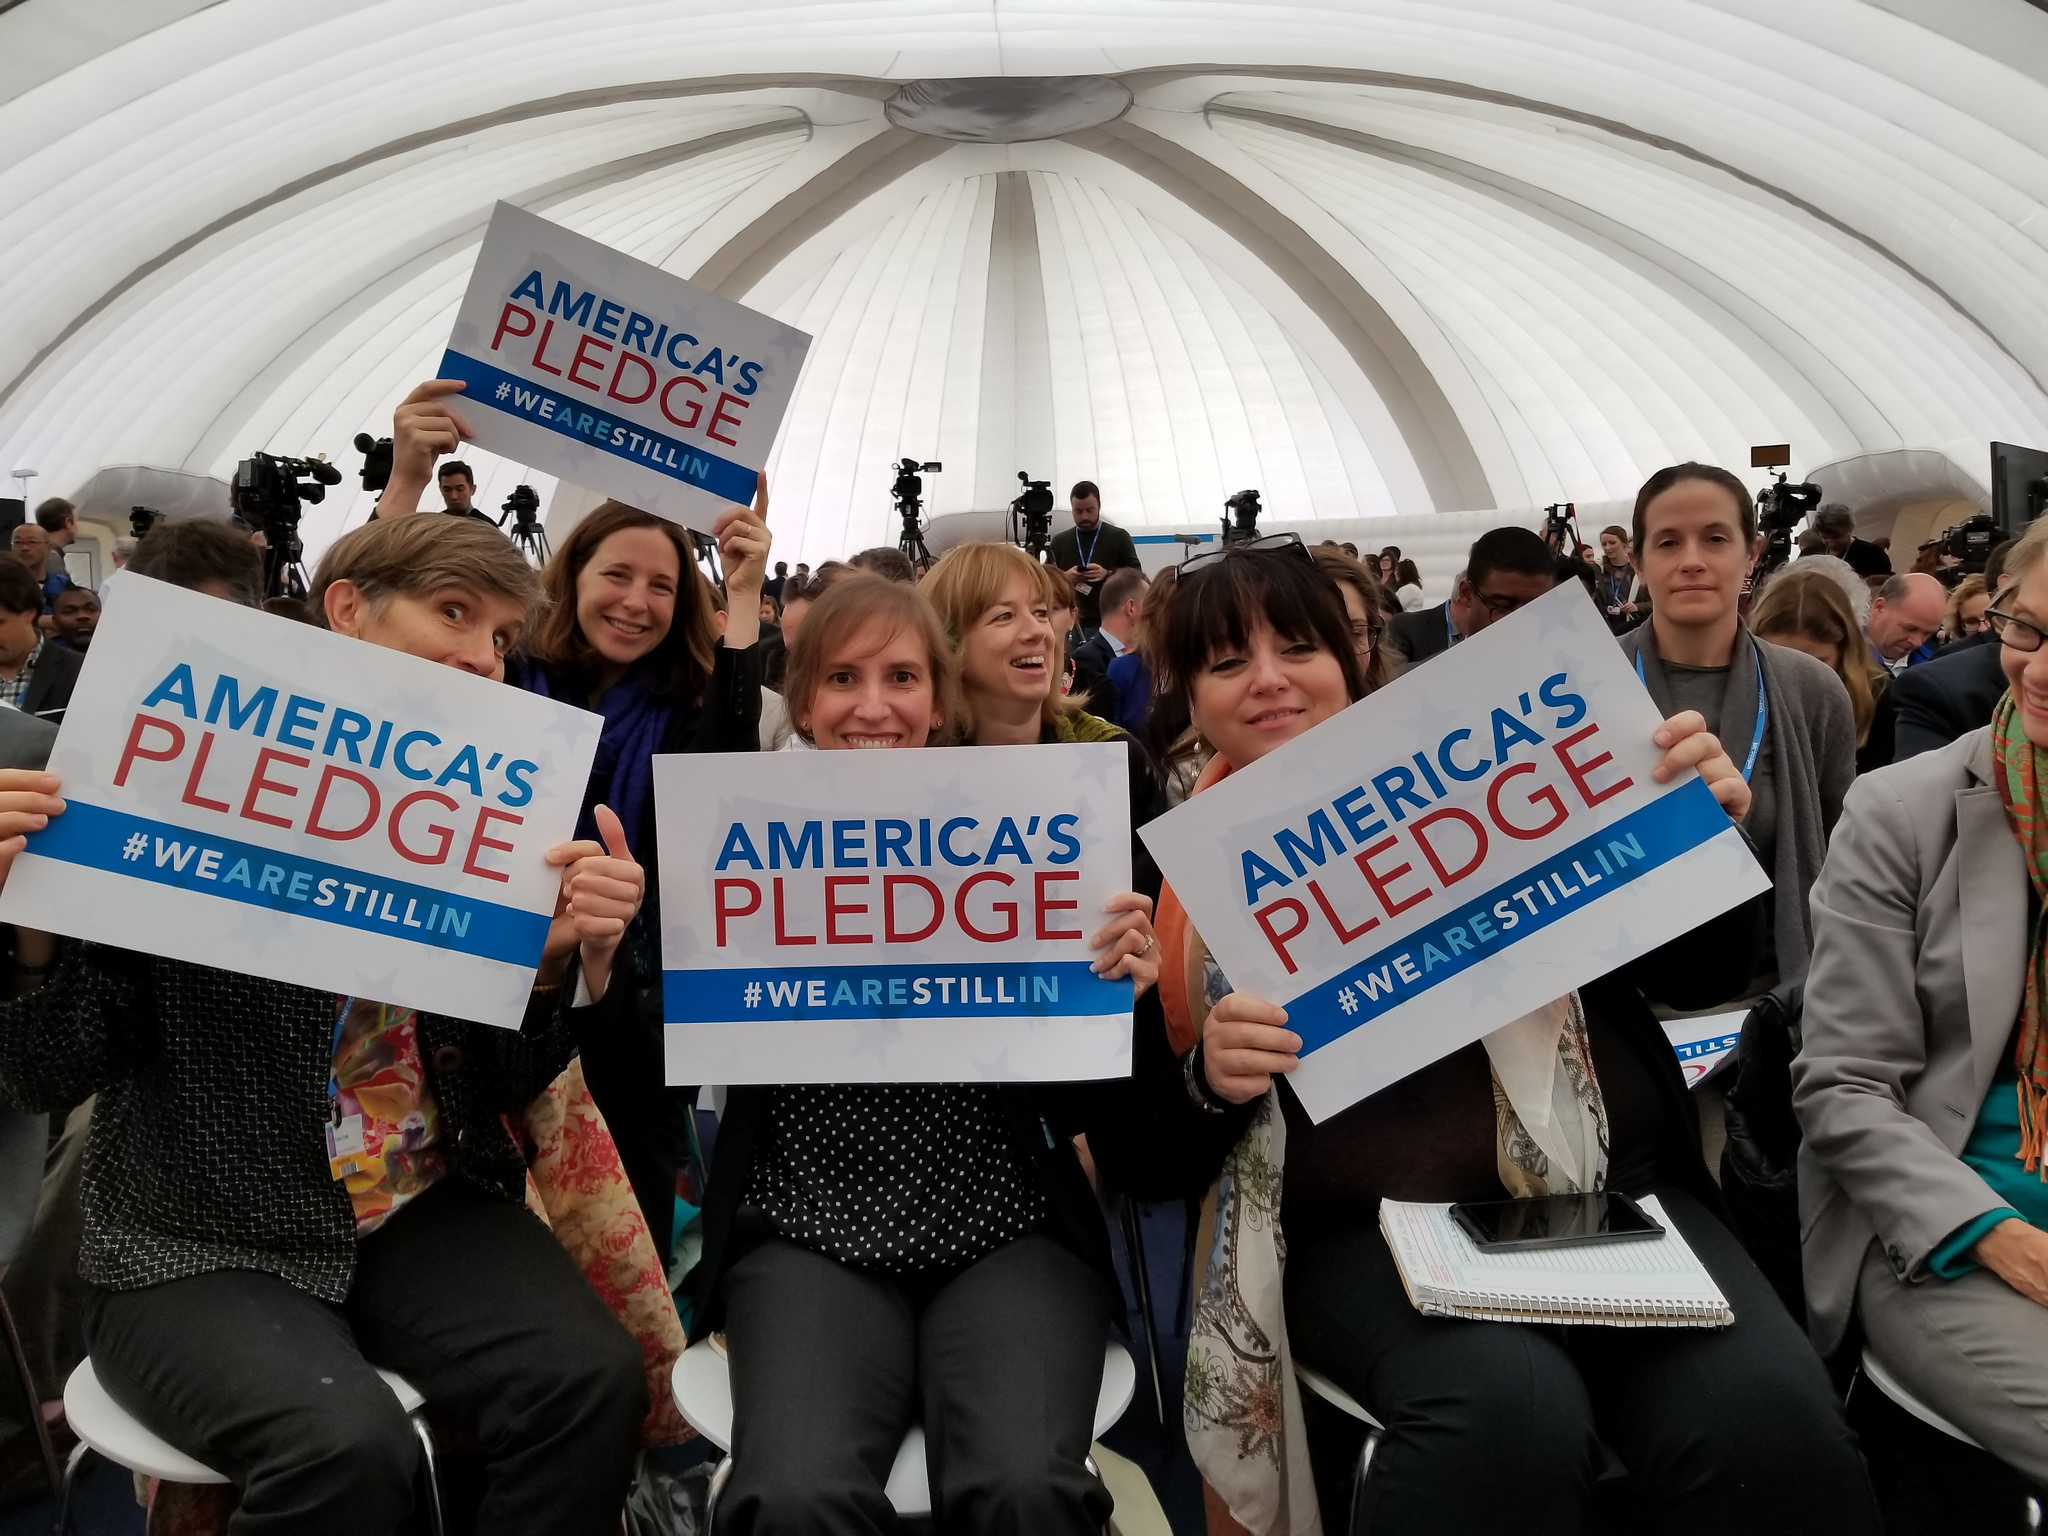 <p>At an event where America\'s Pledge was announced. Flickr/WRI</p>